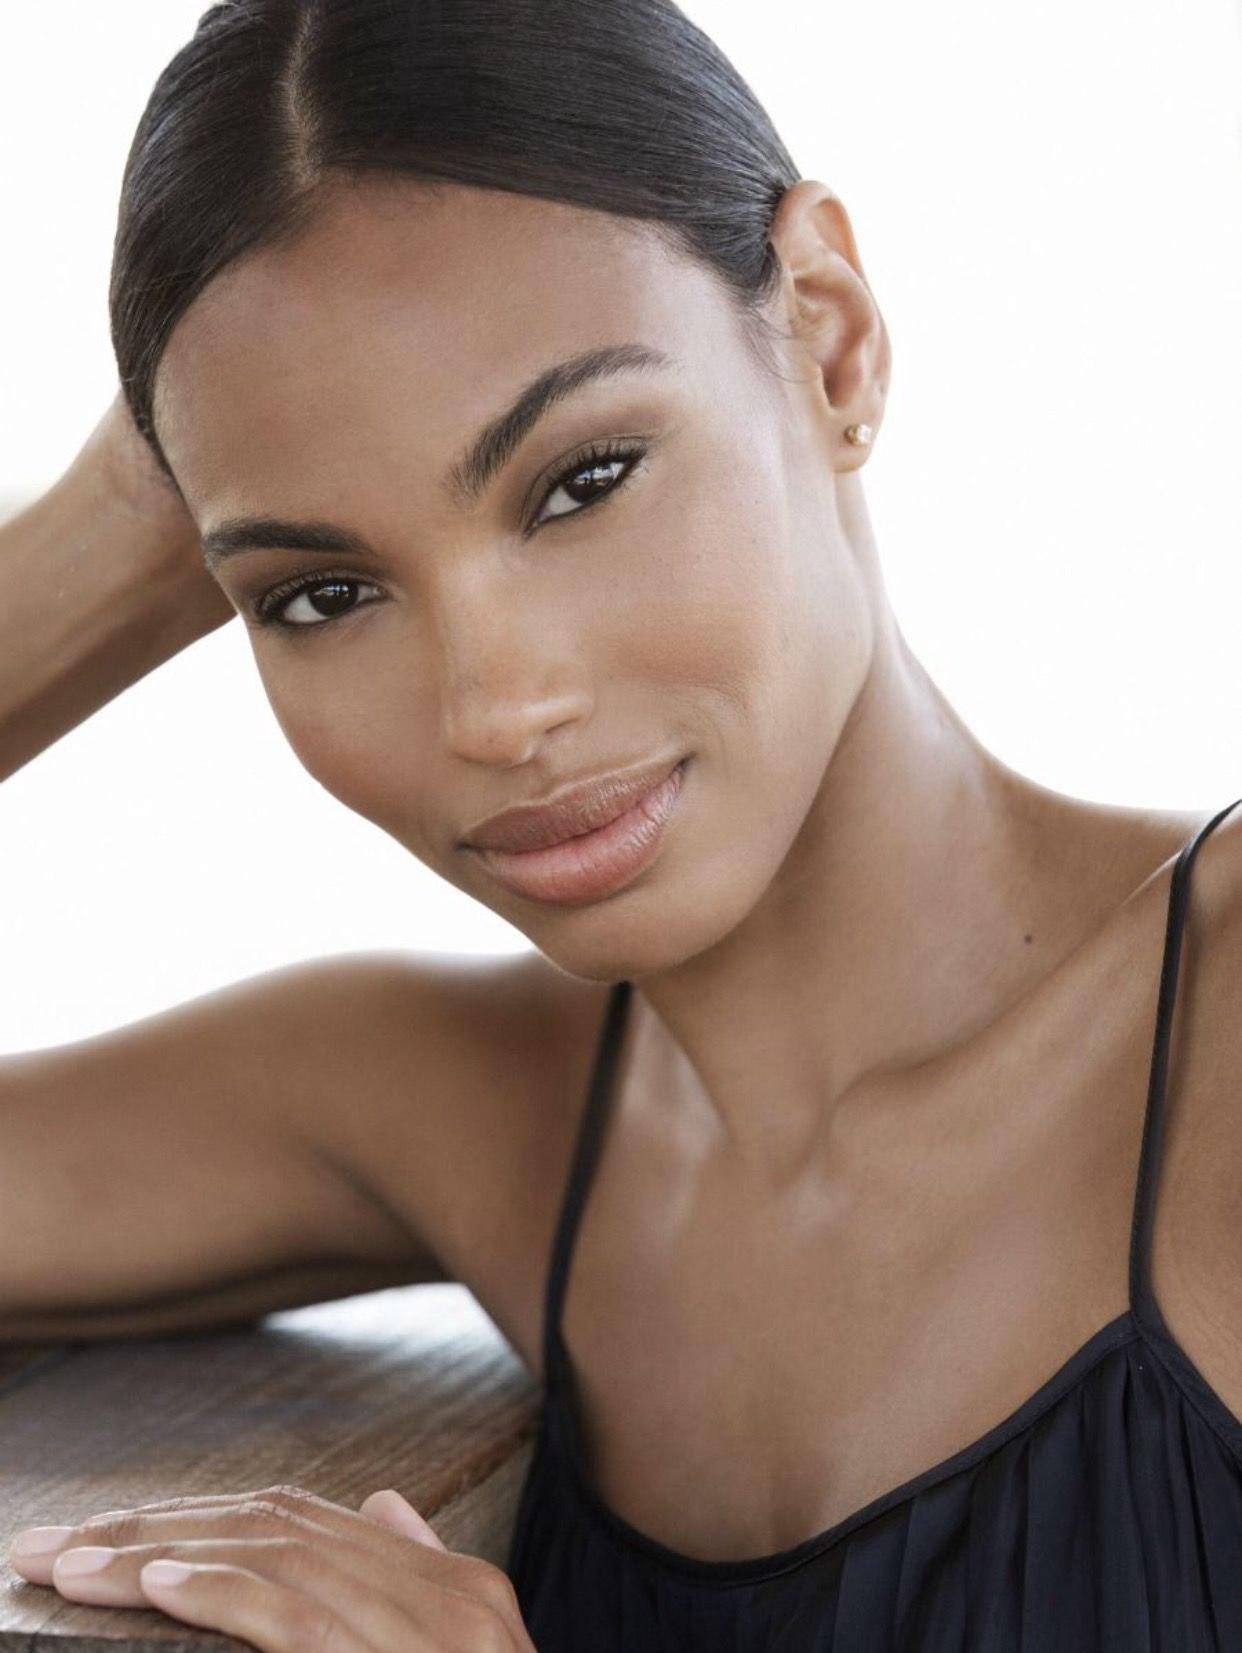 Kimani is played by Dominique ArmorerShe is a very beautiful woman and this is her